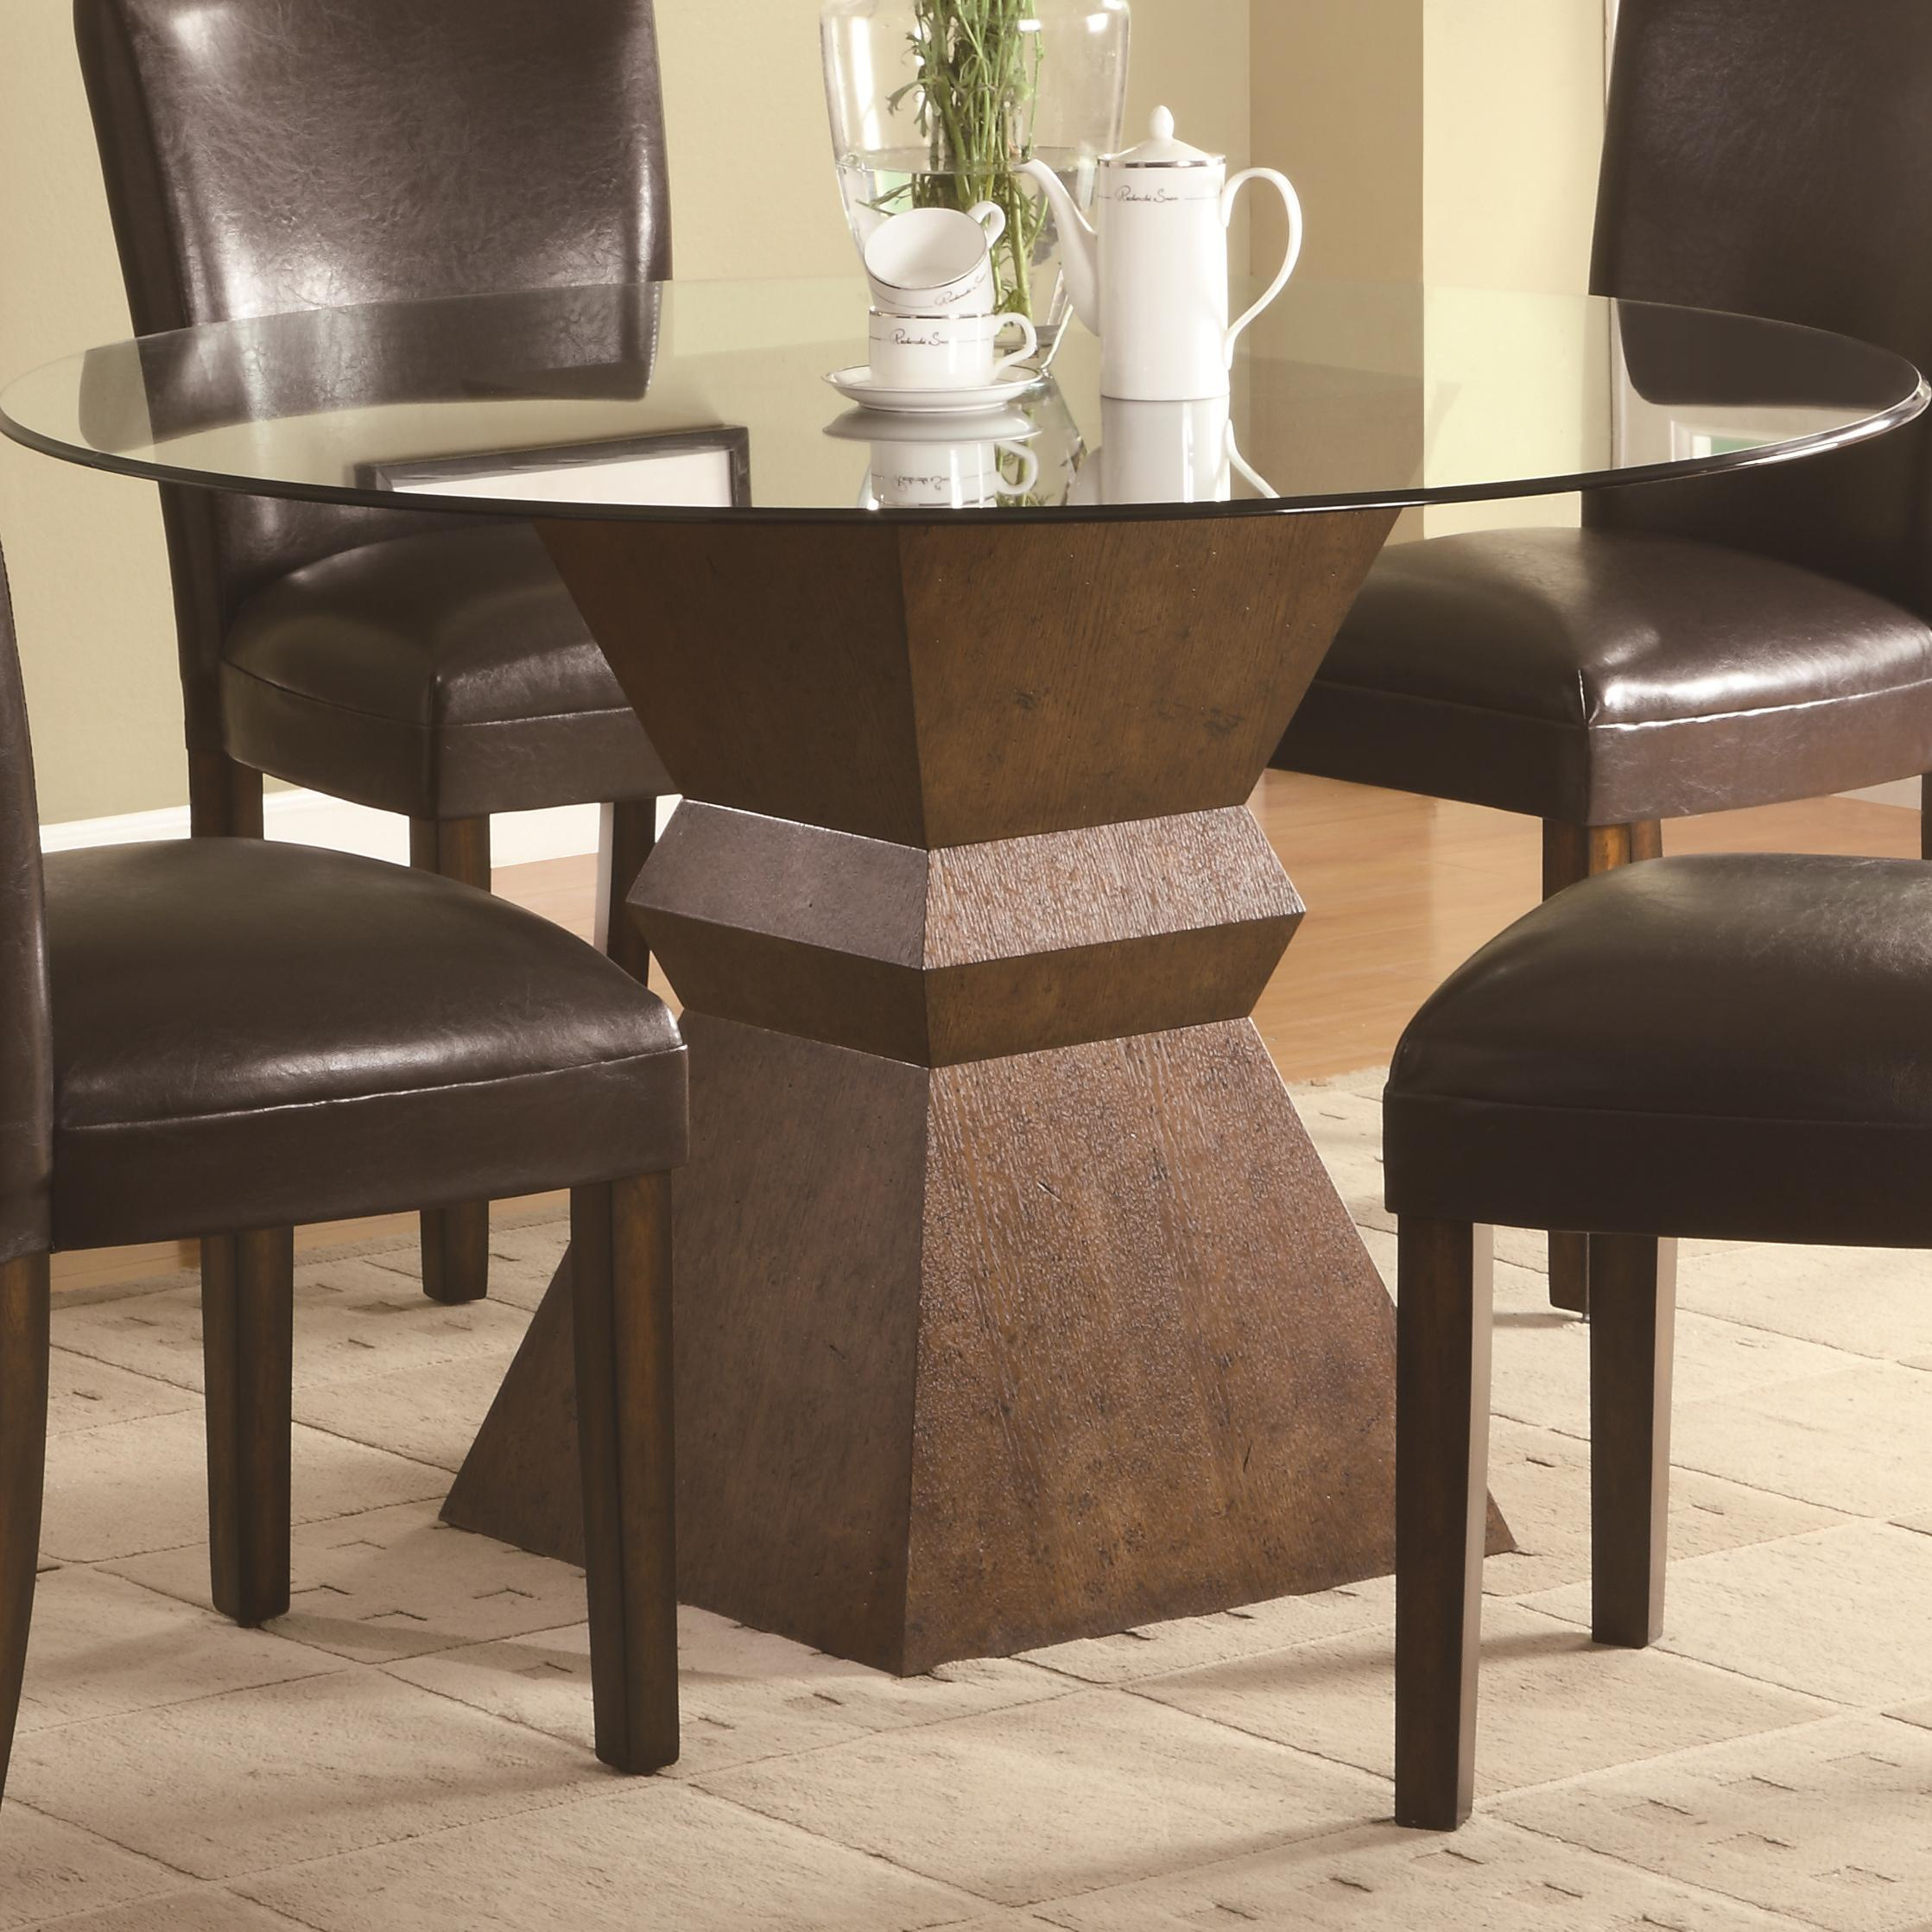 Simple Round Pedestal Table Base For Gl Top With Brown Leather Chairs